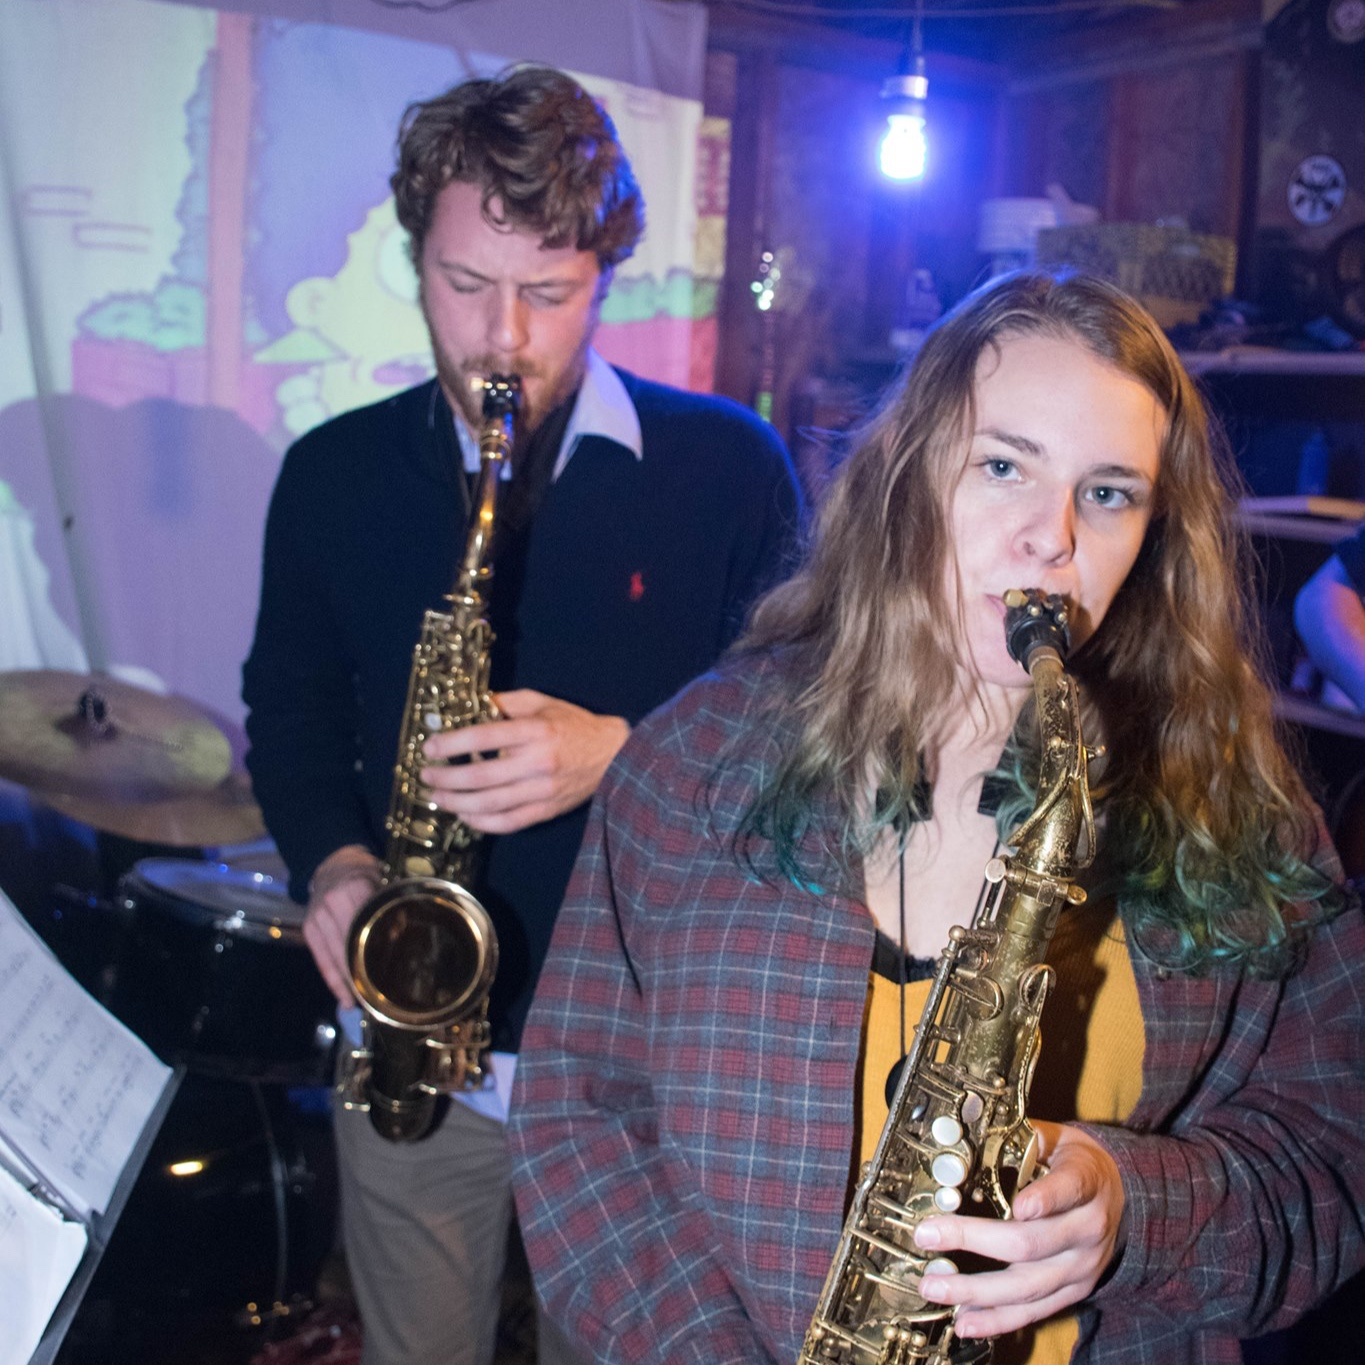 Saxophone Lessons - We work with beginners to advanced saxophone players. All styles of music from school band, jazz, rock, blues, pop, and more.